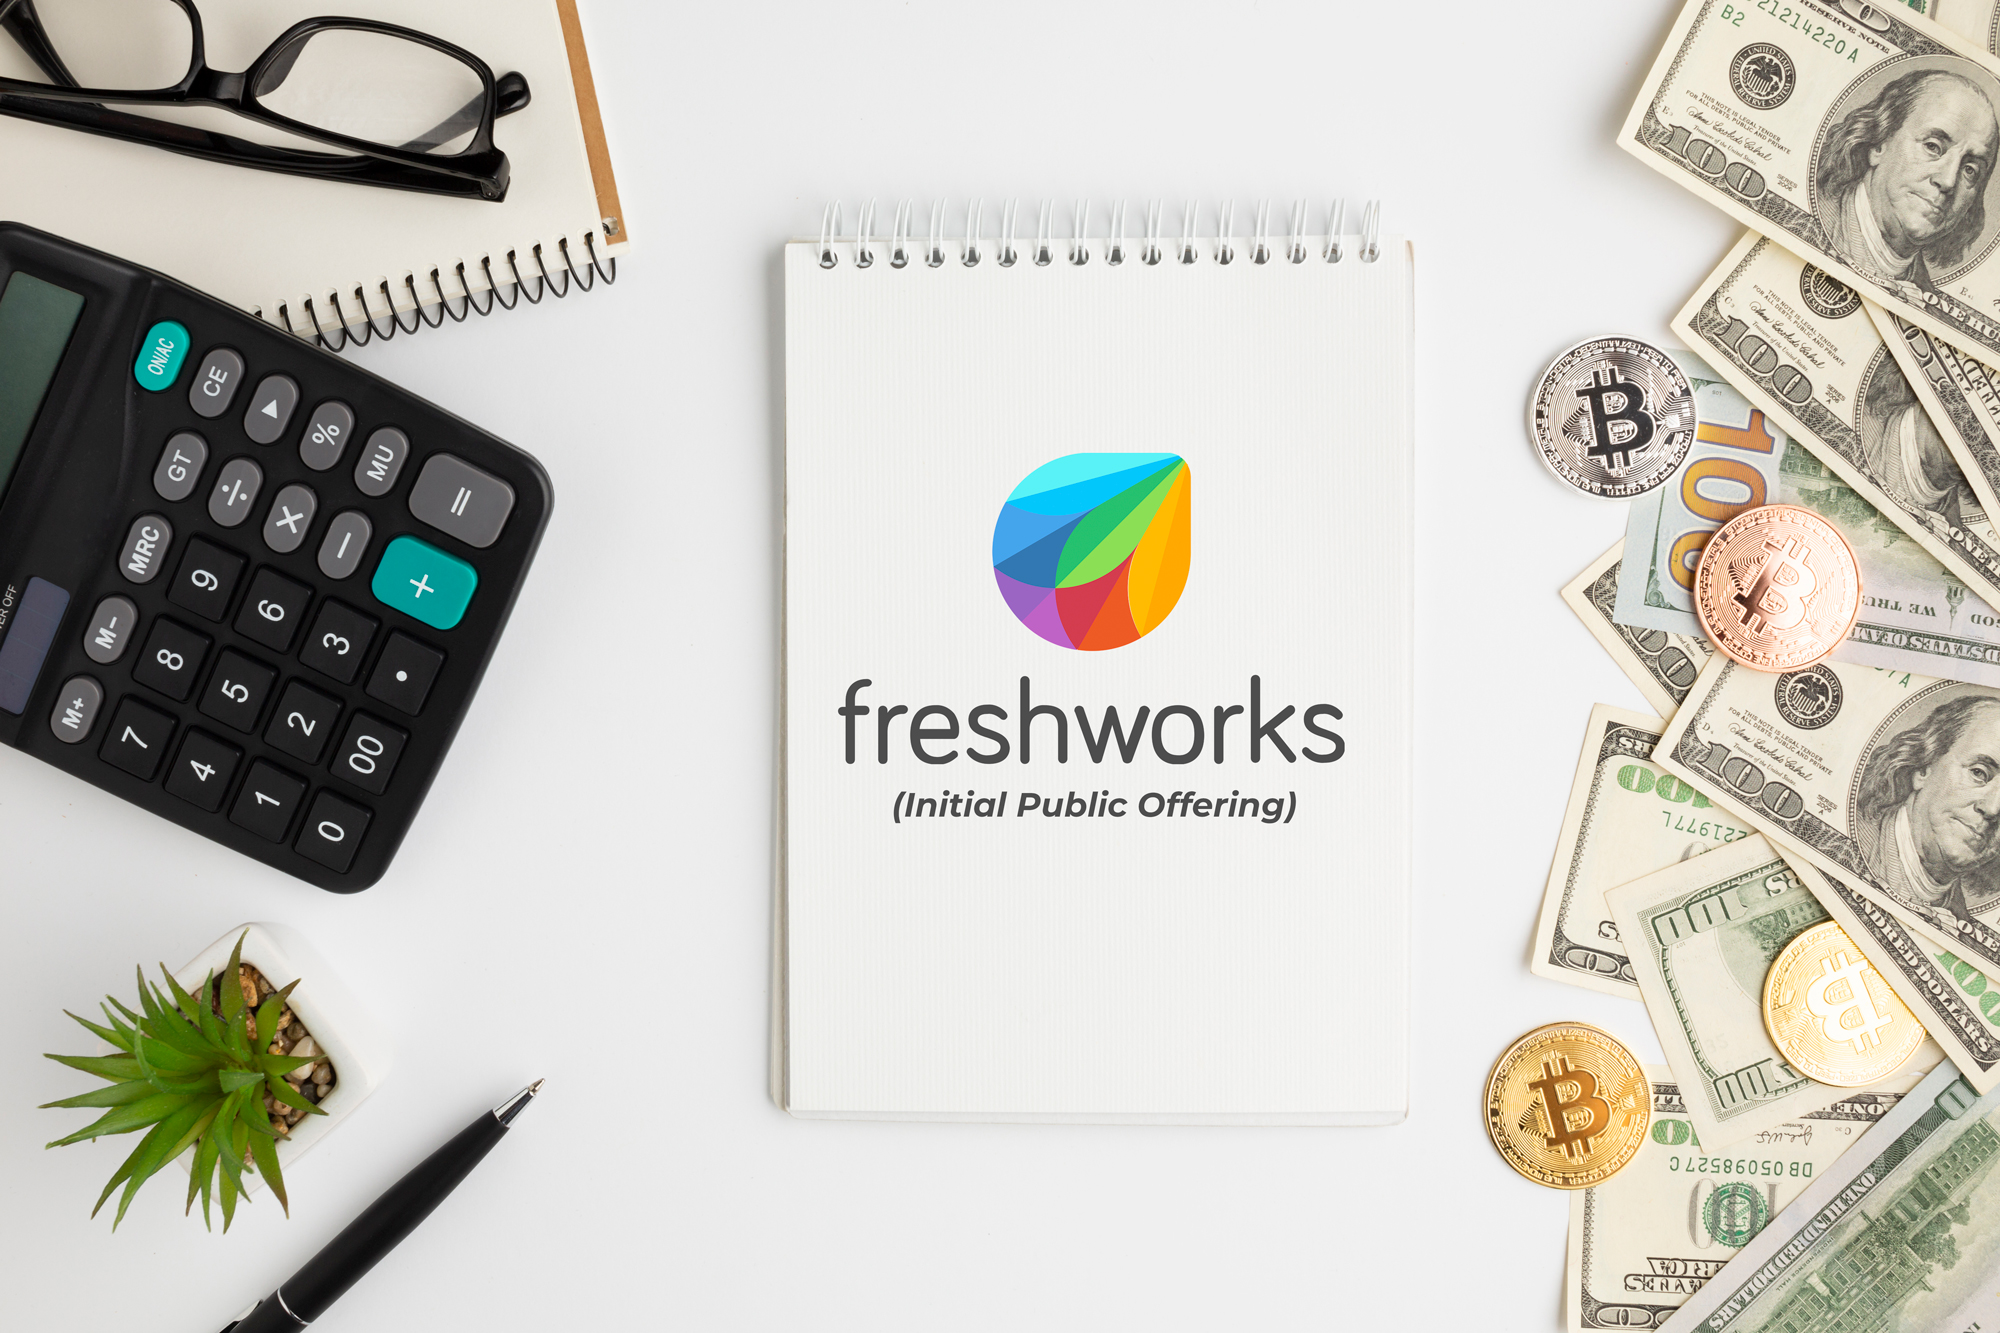 Table top view Freshworks logo in middle with a calculator on left and and US Dollar on right